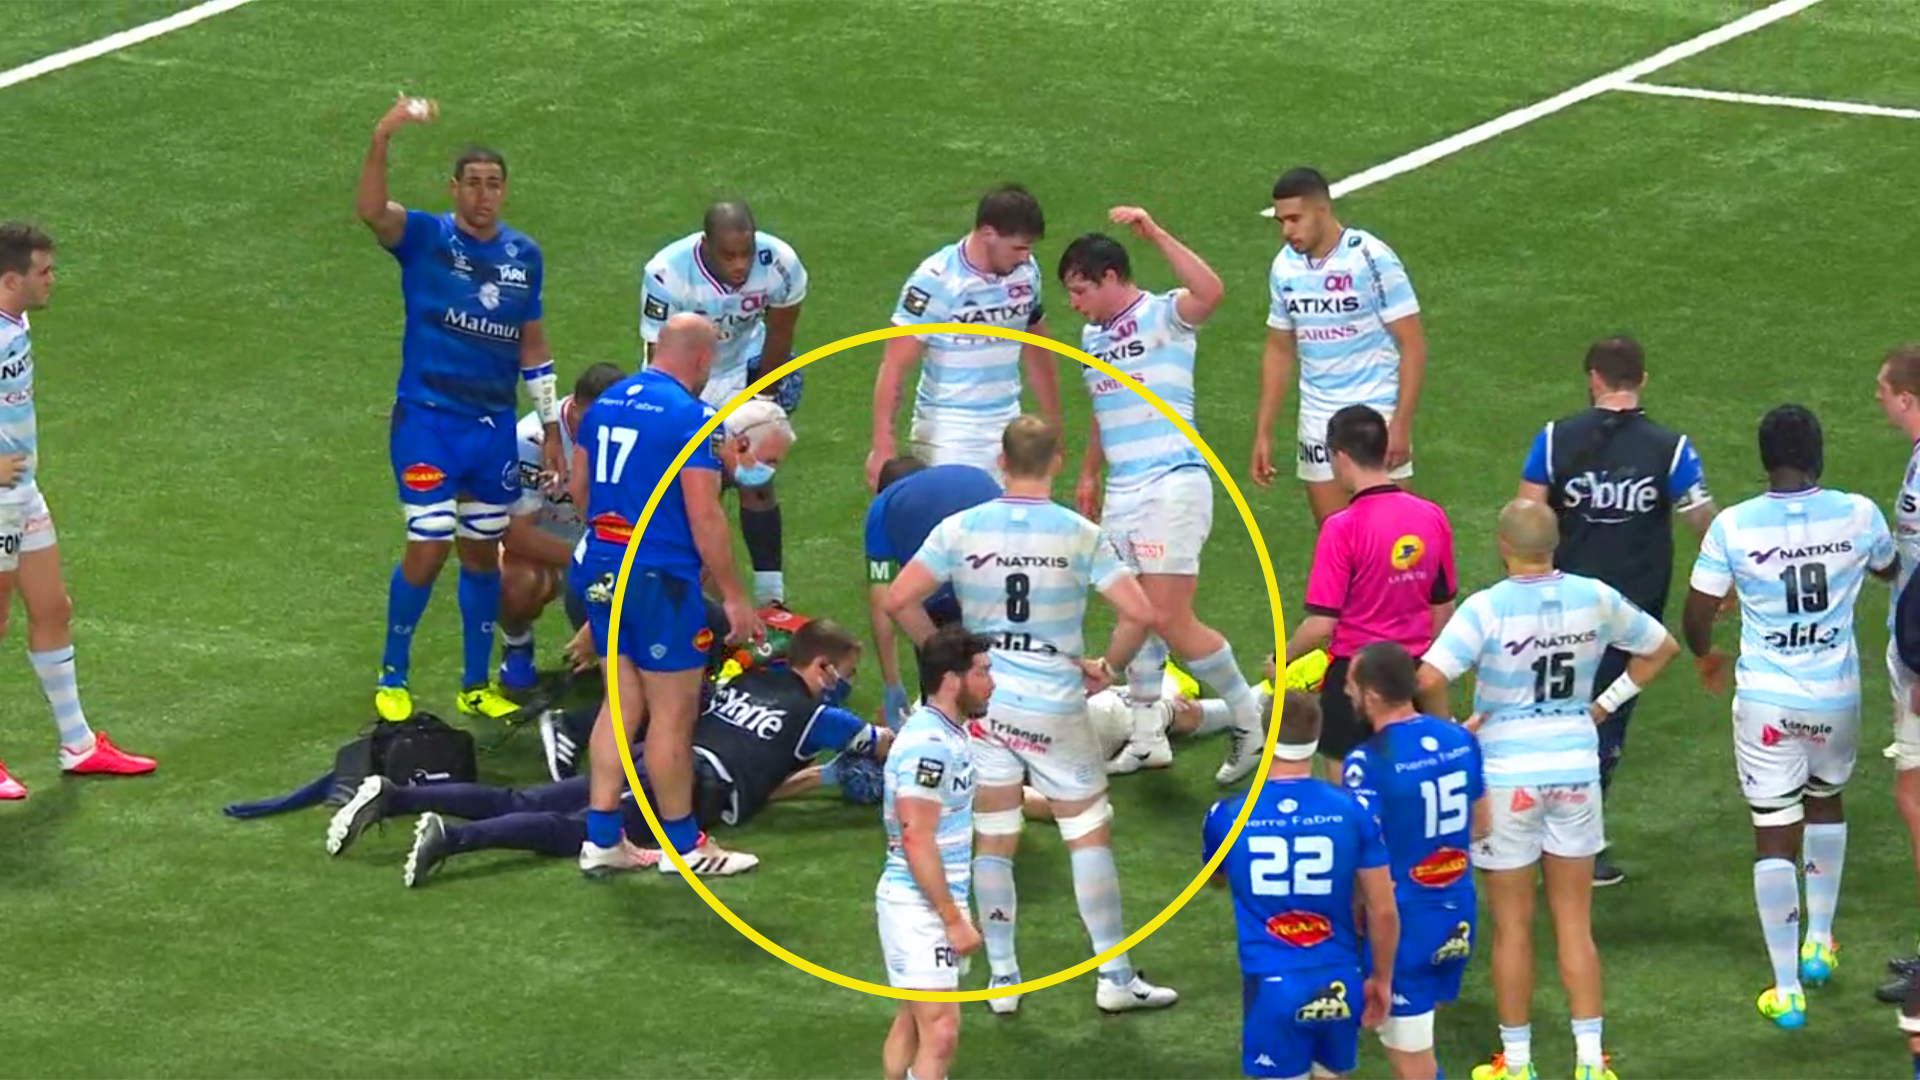 Horrific scenes in Top 14 as players realise teammate is unconscious after final whistle